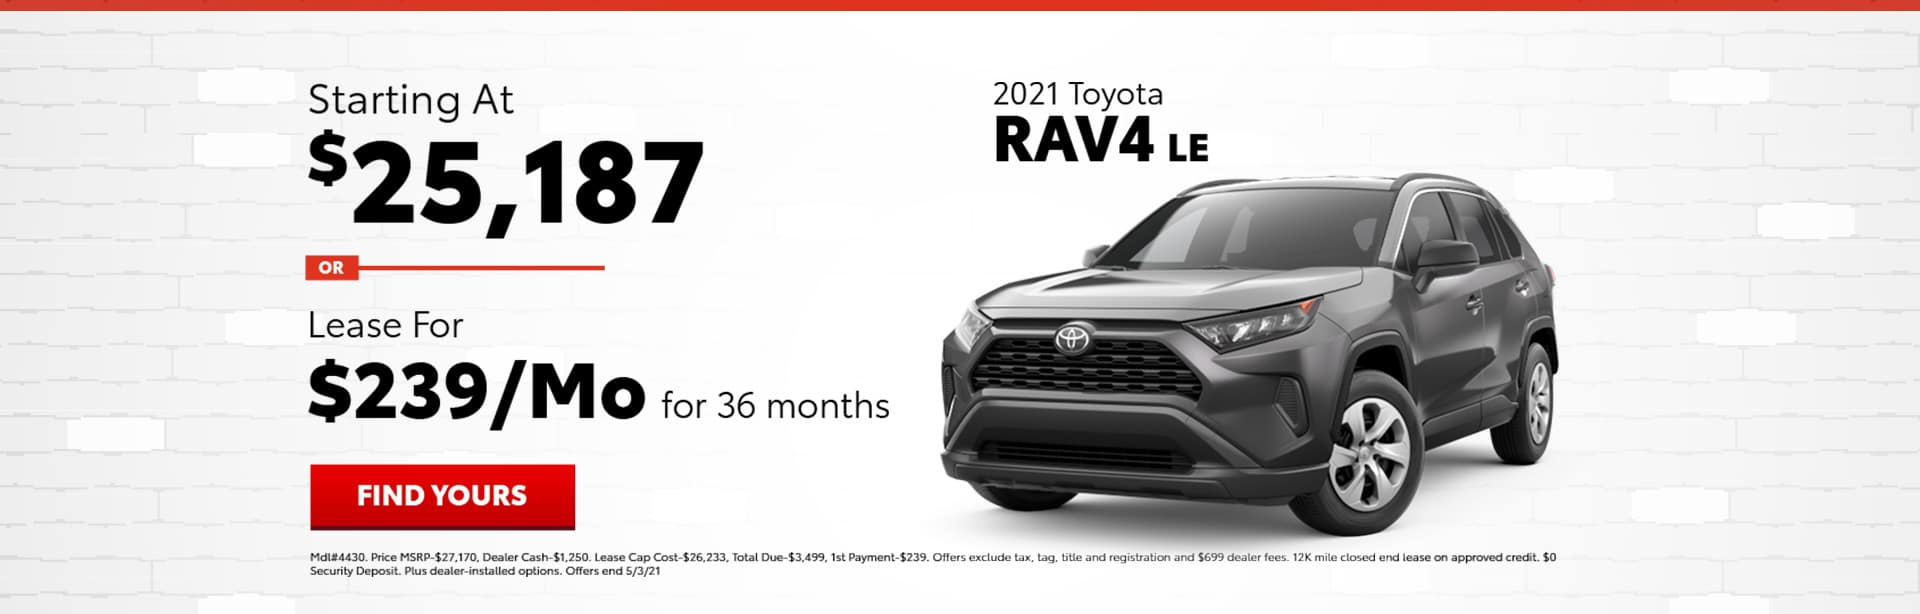 rav4-slide-apr-21